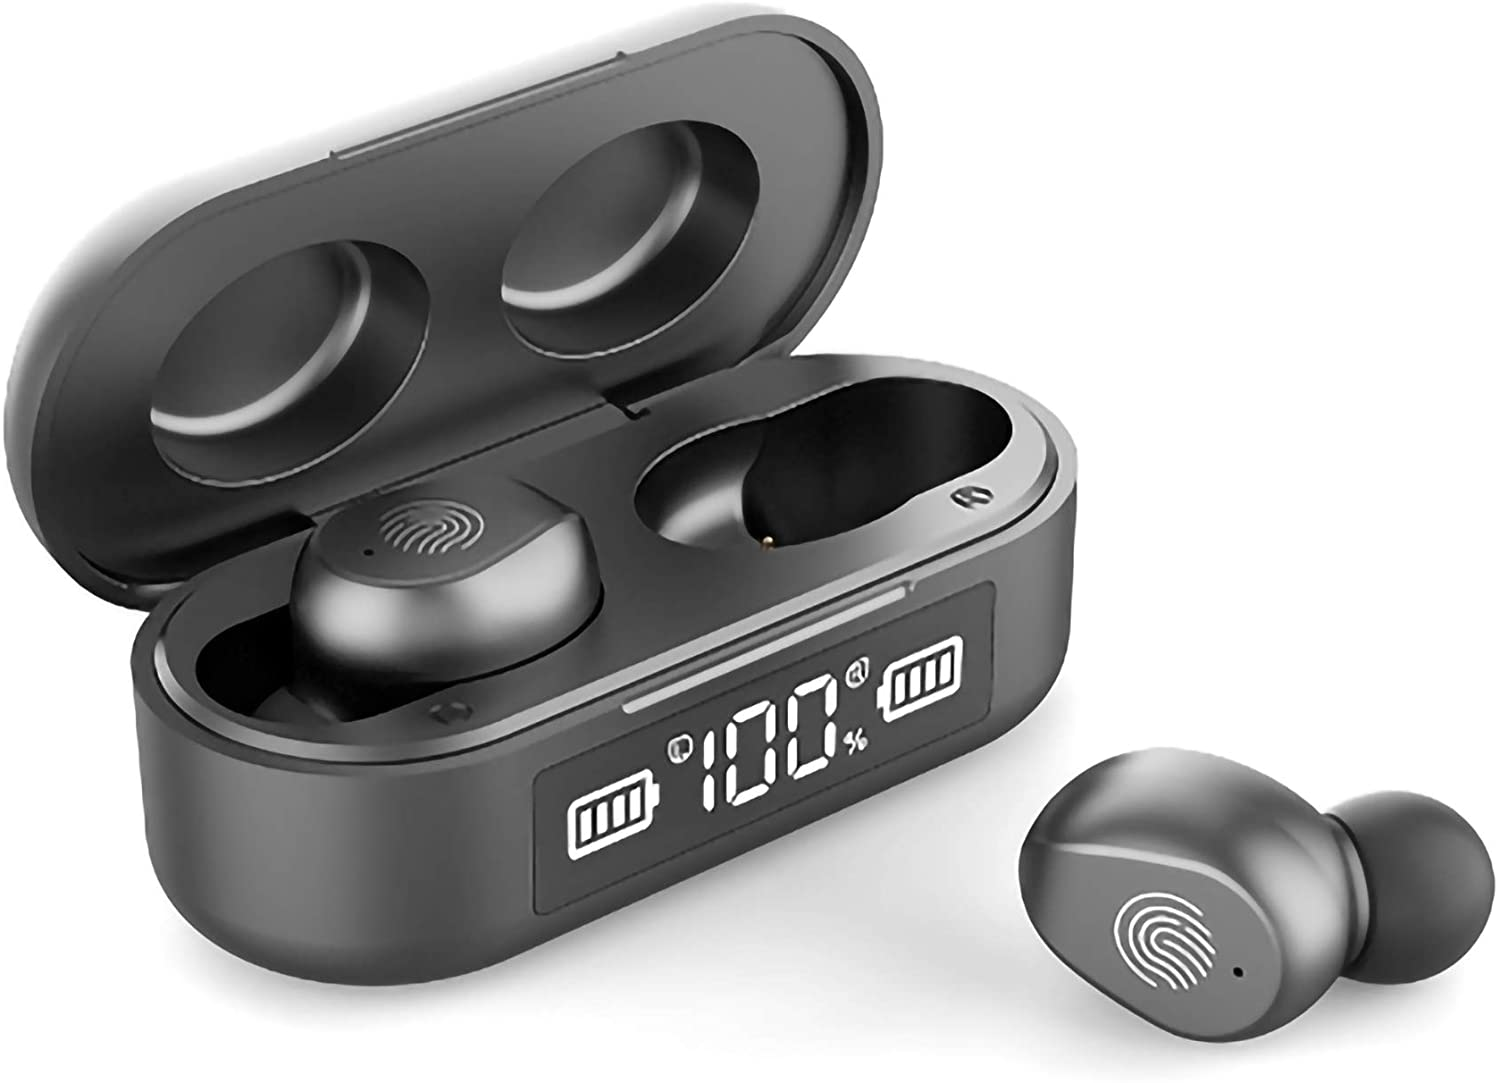 Earbuds with Microphone, High-Fidelity Sound Quality Earphone,Play Games, Listen to Songs, Let Music Enrich Your Life